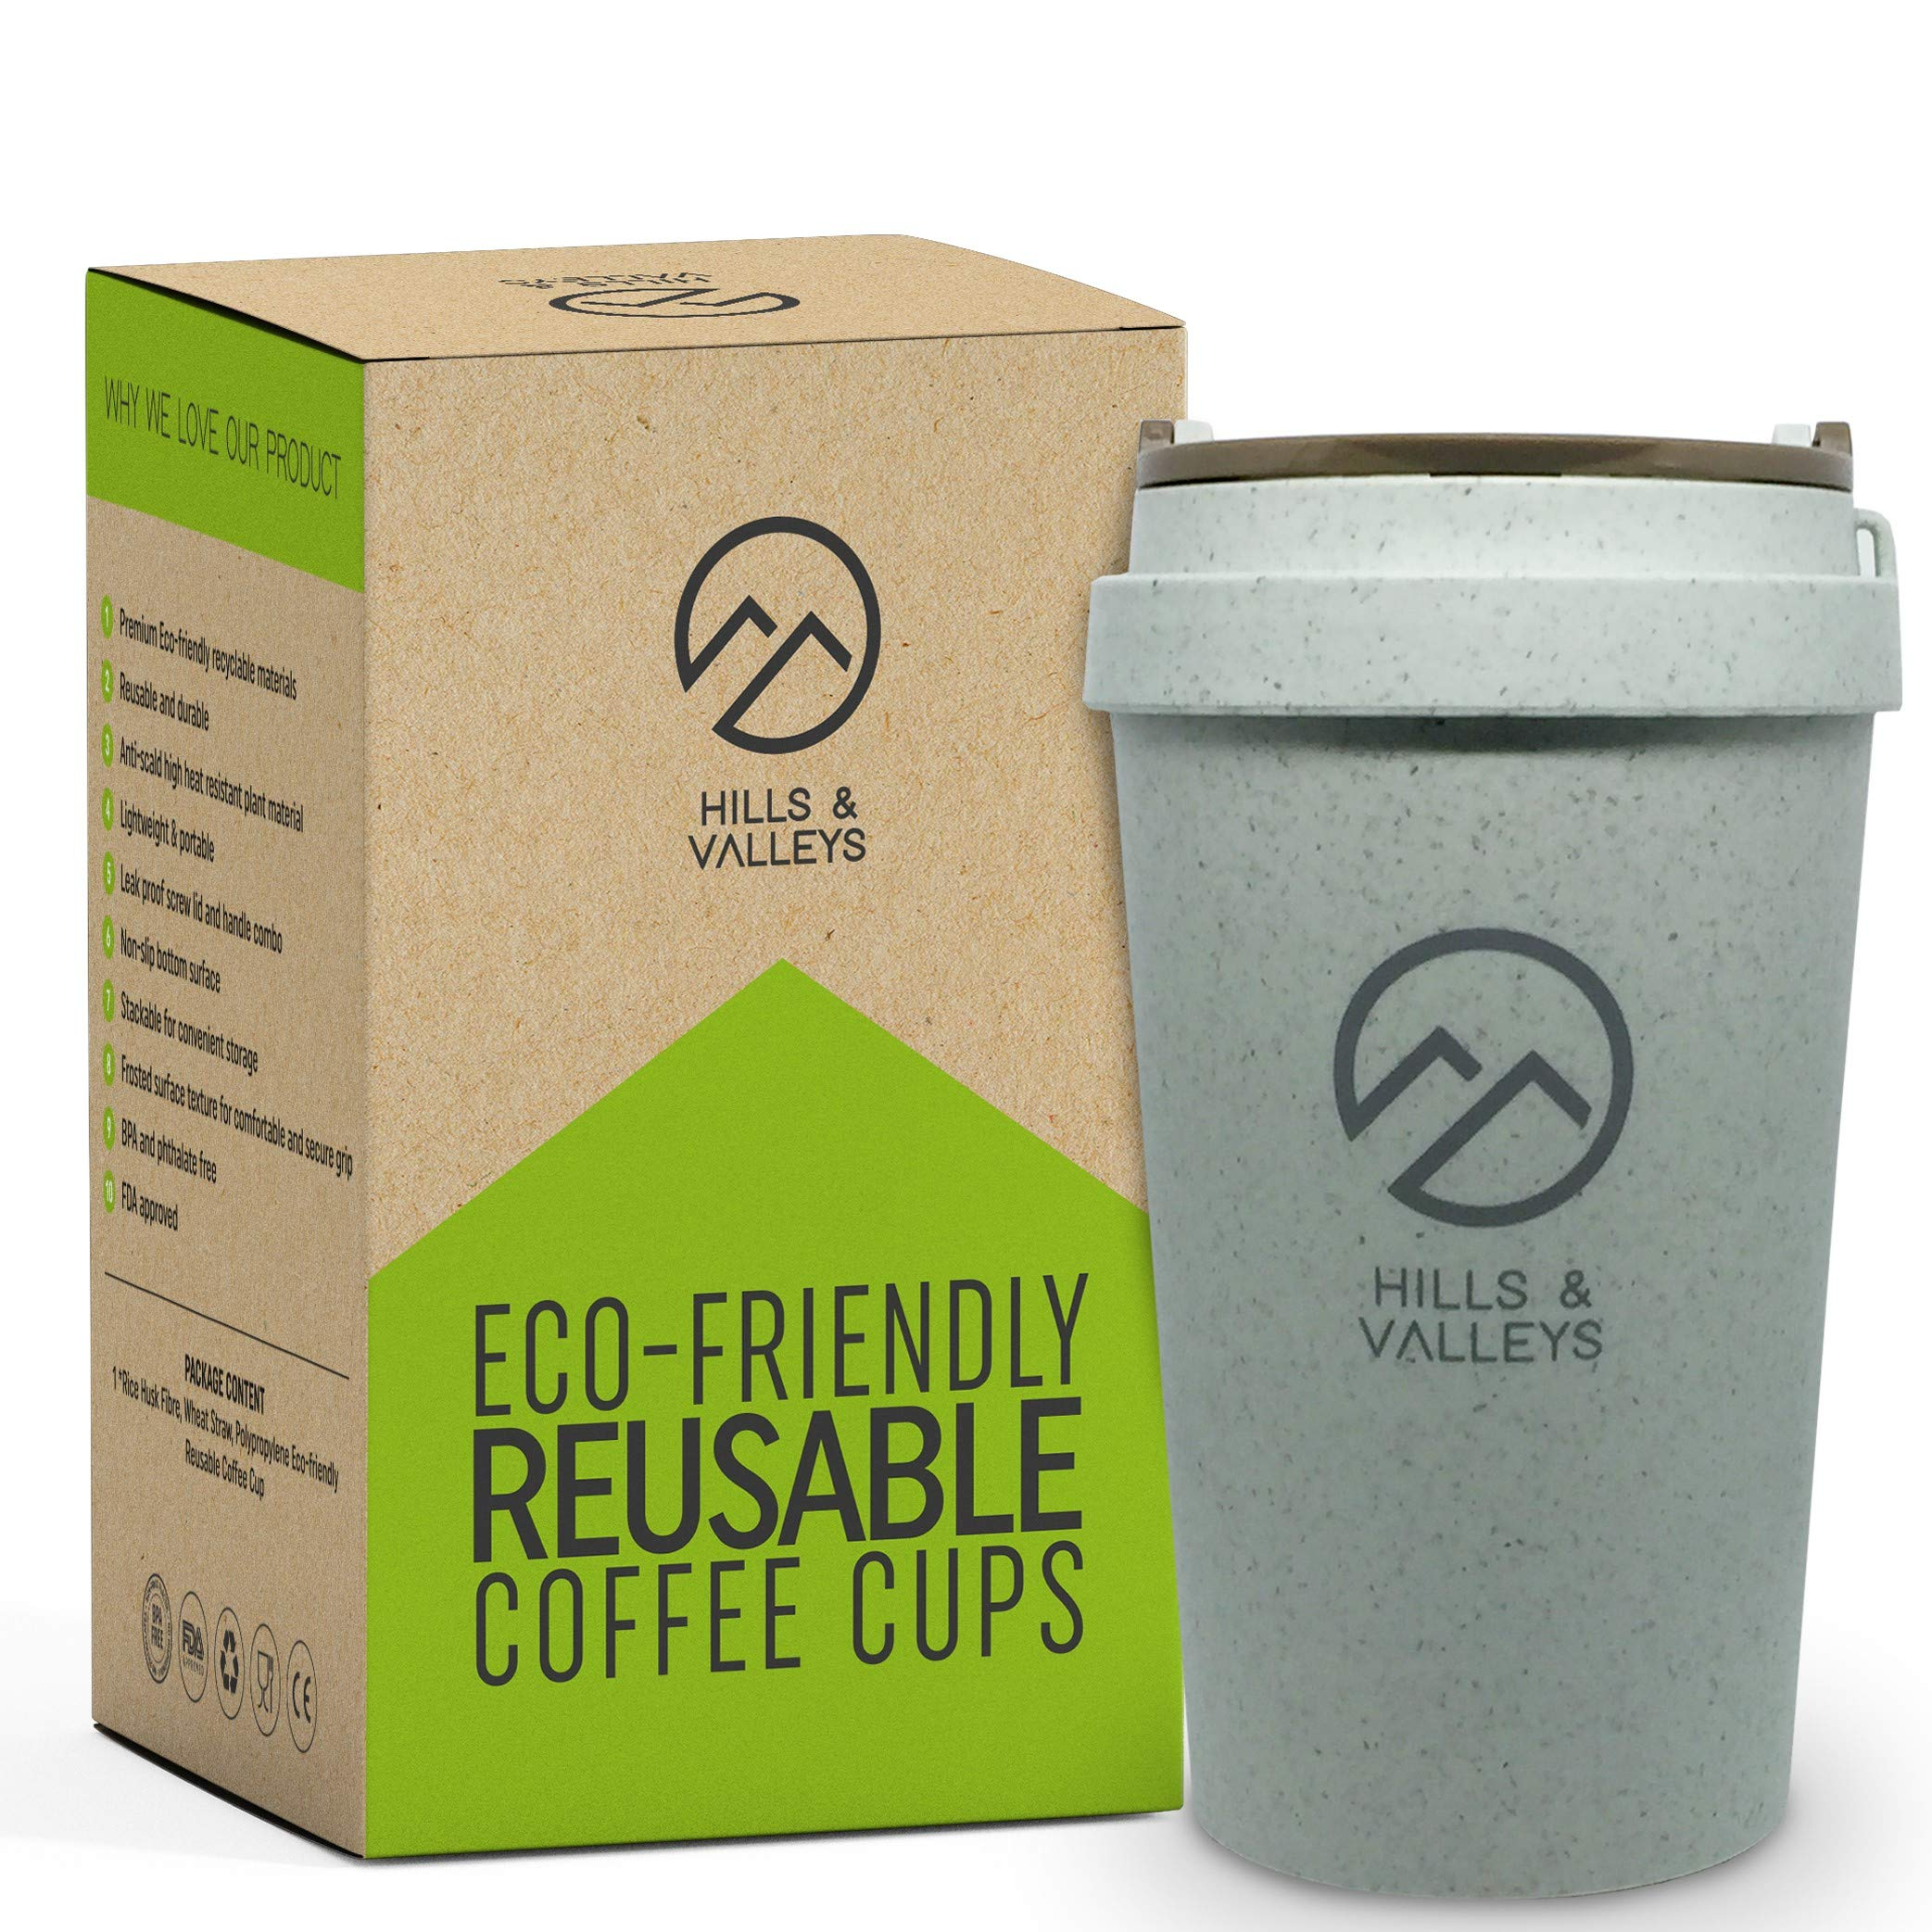 The-Good-Cup-The-Eco-Friendly-Rice-Husk-Reusable-Coffee-Cup-Heat-Insulated-Portable-Leak-Proof-Screw-Tight-Lid-Textured-Grip-400ml14oz-Light-Weight-Travel-Mug